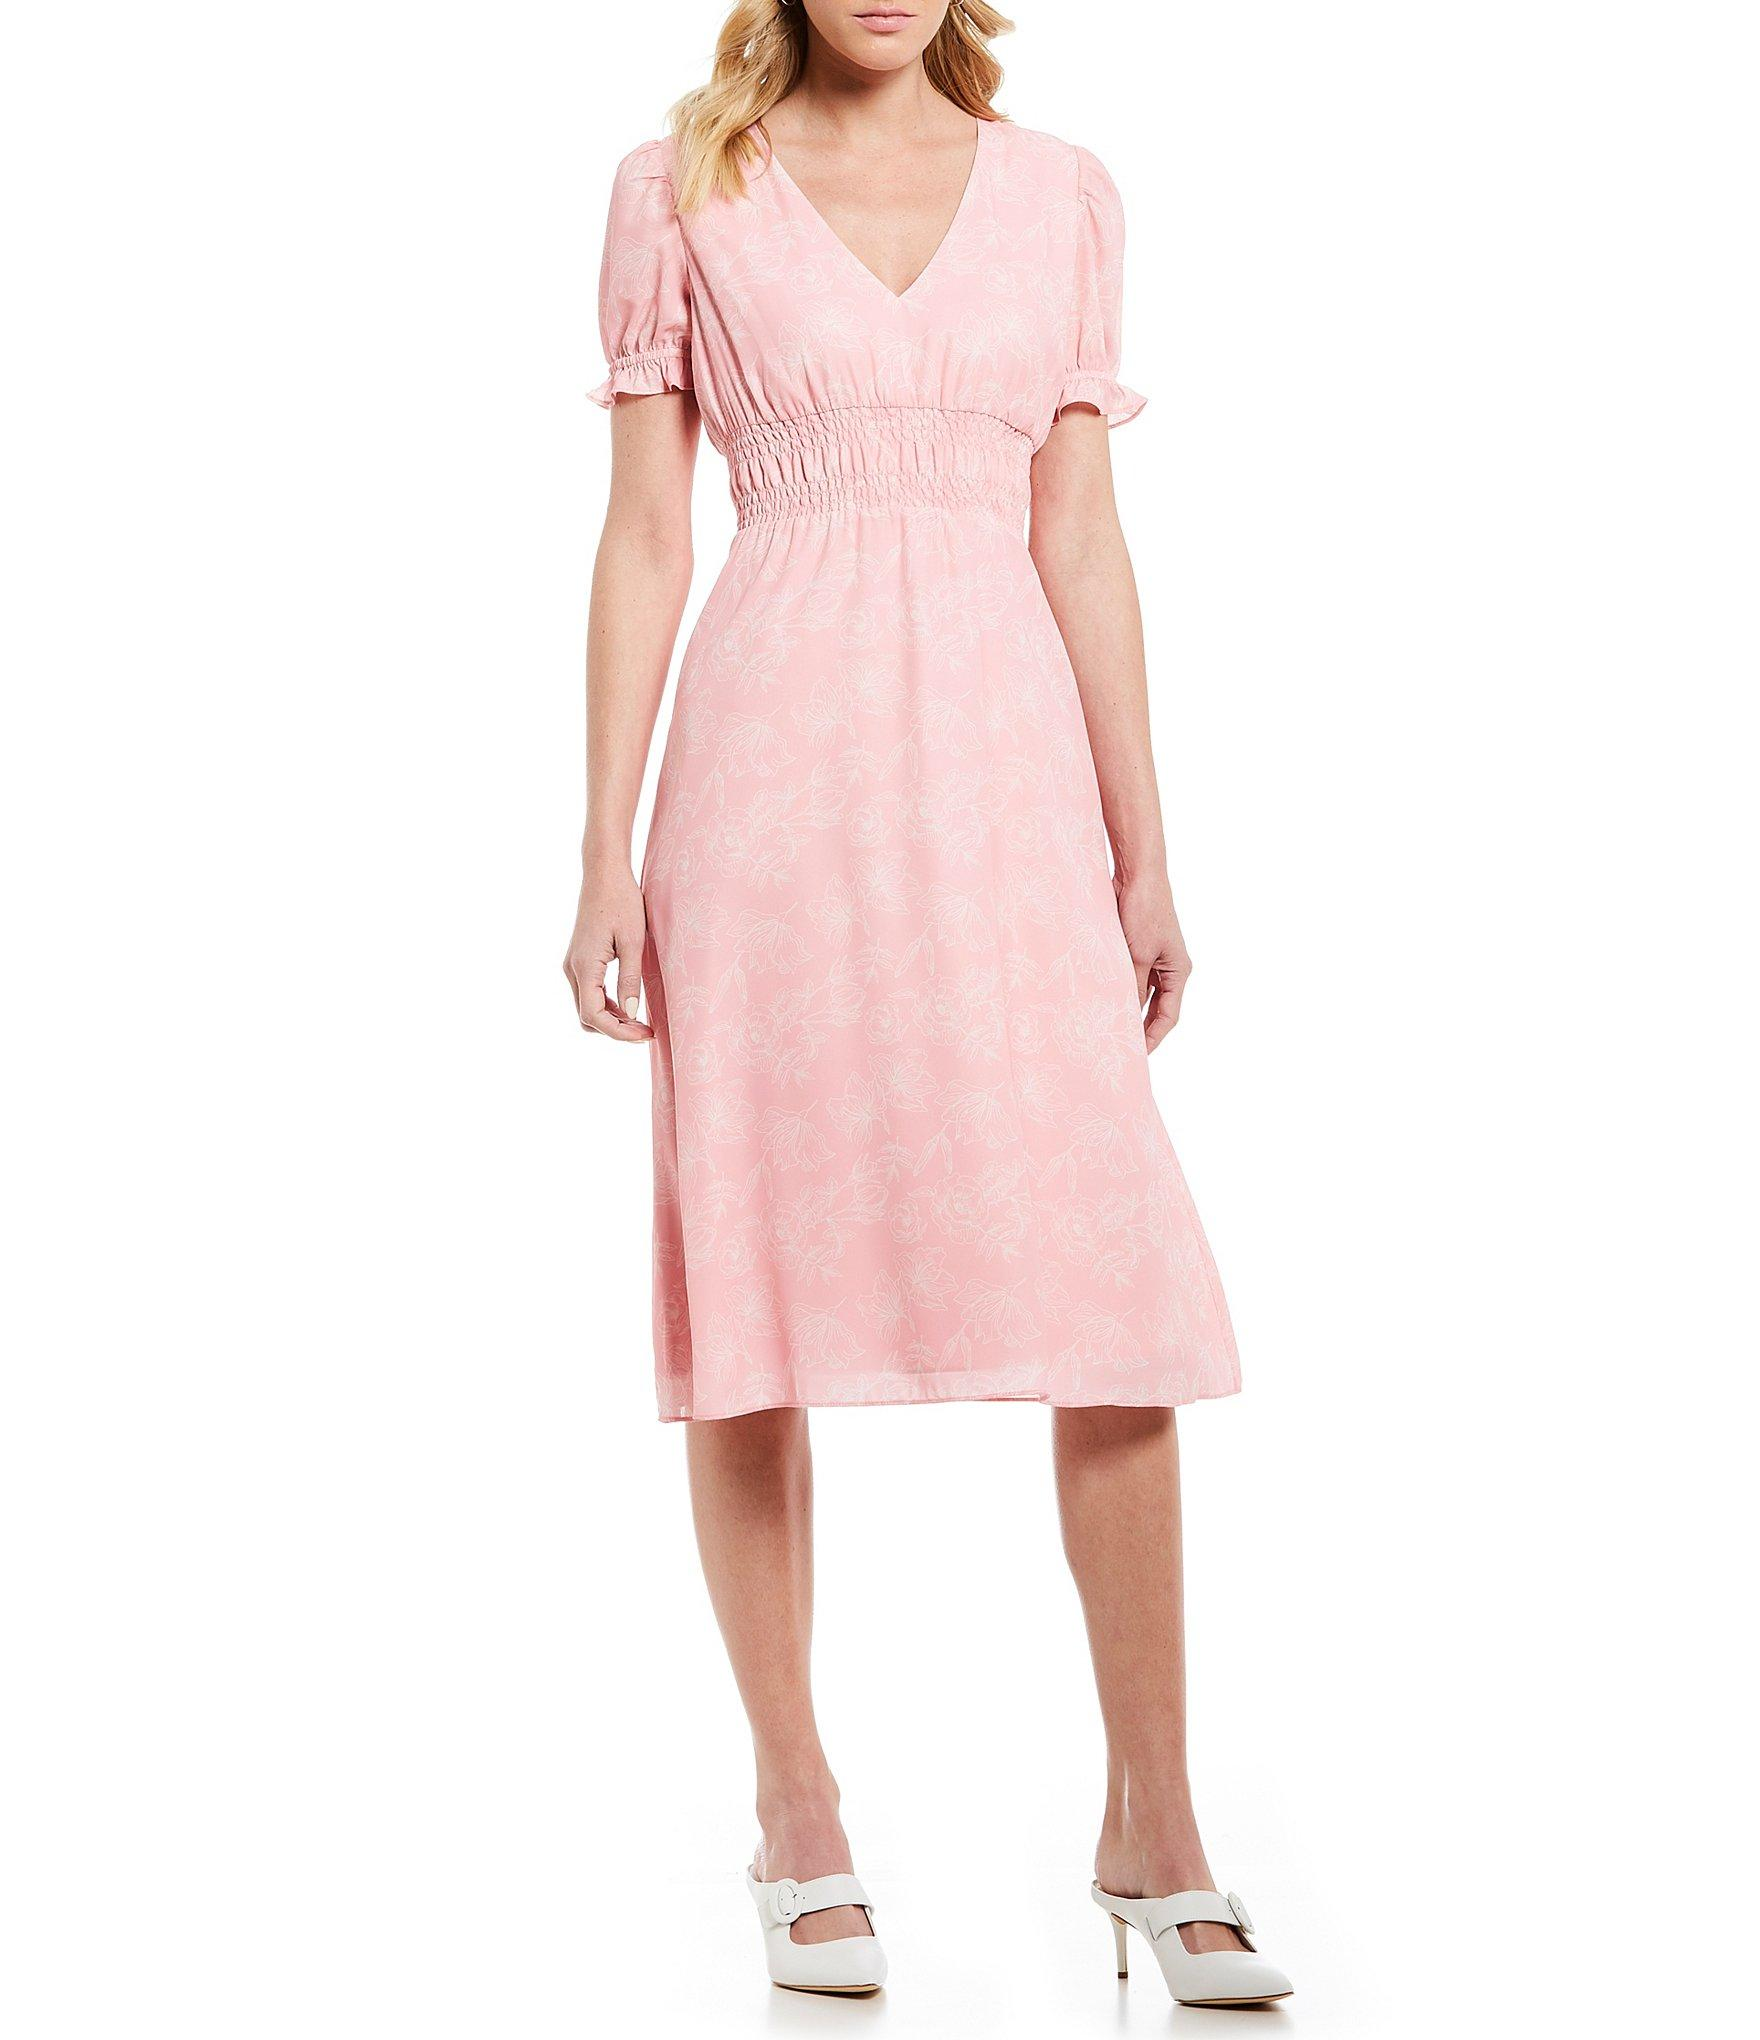 1f329ccadf7e Gianni Bini. Women s Pink Alice Floral Print V-neck Puff Sleeve Smocked  Waist A-line Midi Dress